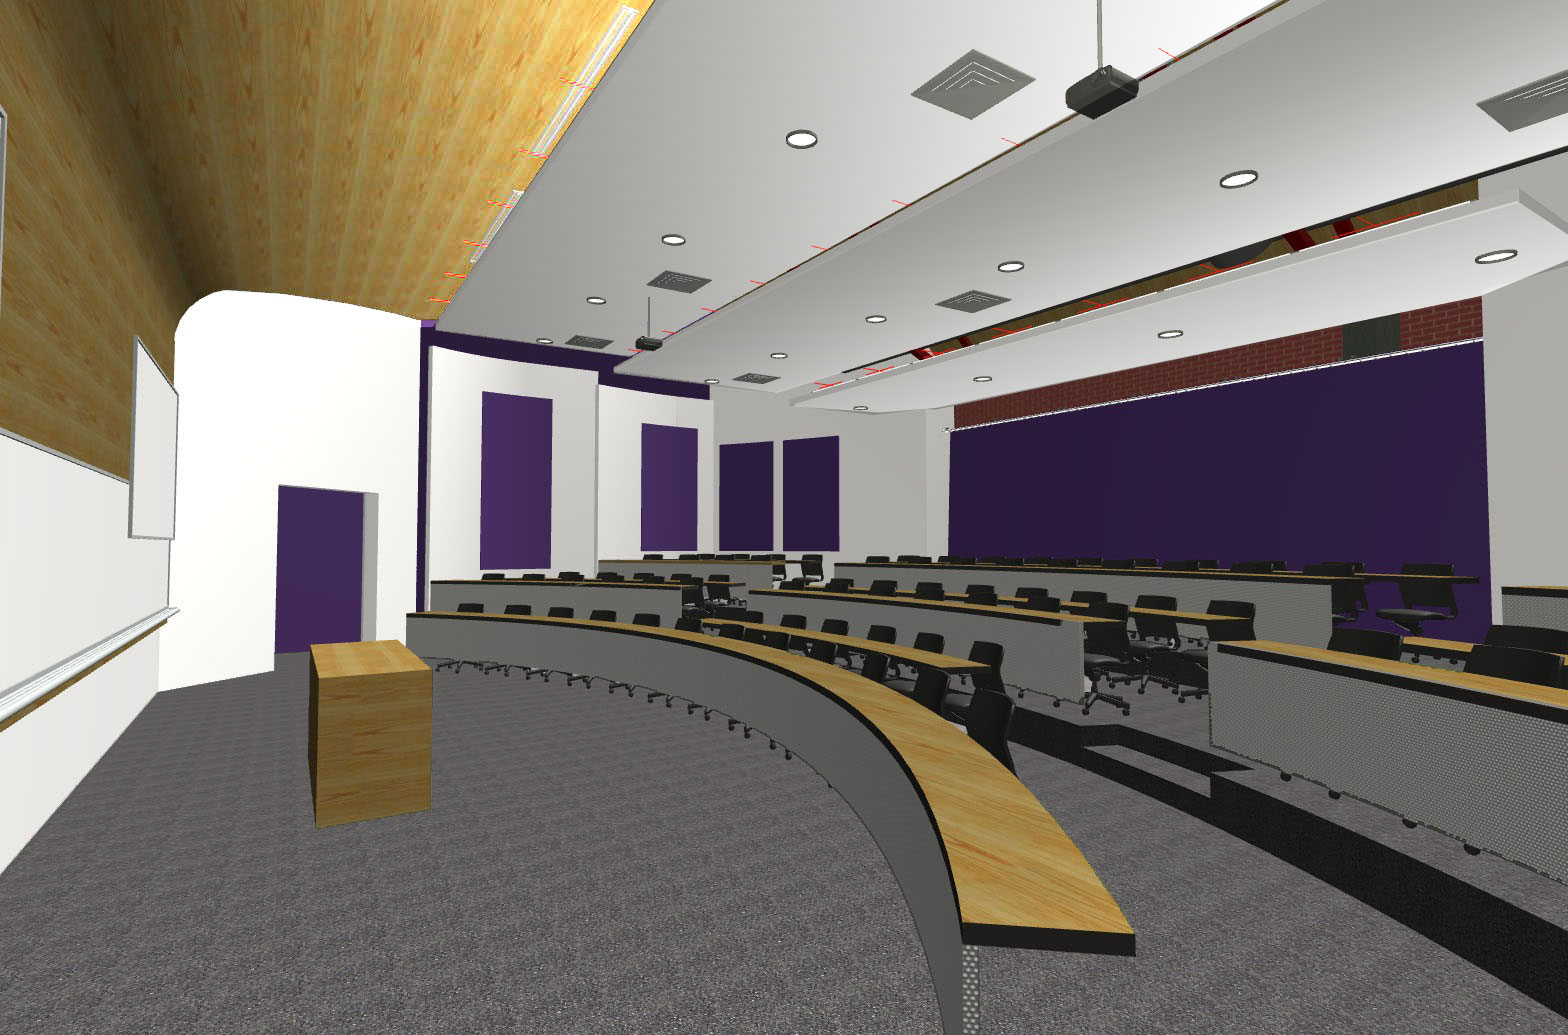 Ueb Builders Ueb Builders Converts Grand Canyon University Gymnasium Into Four Lecture Halls